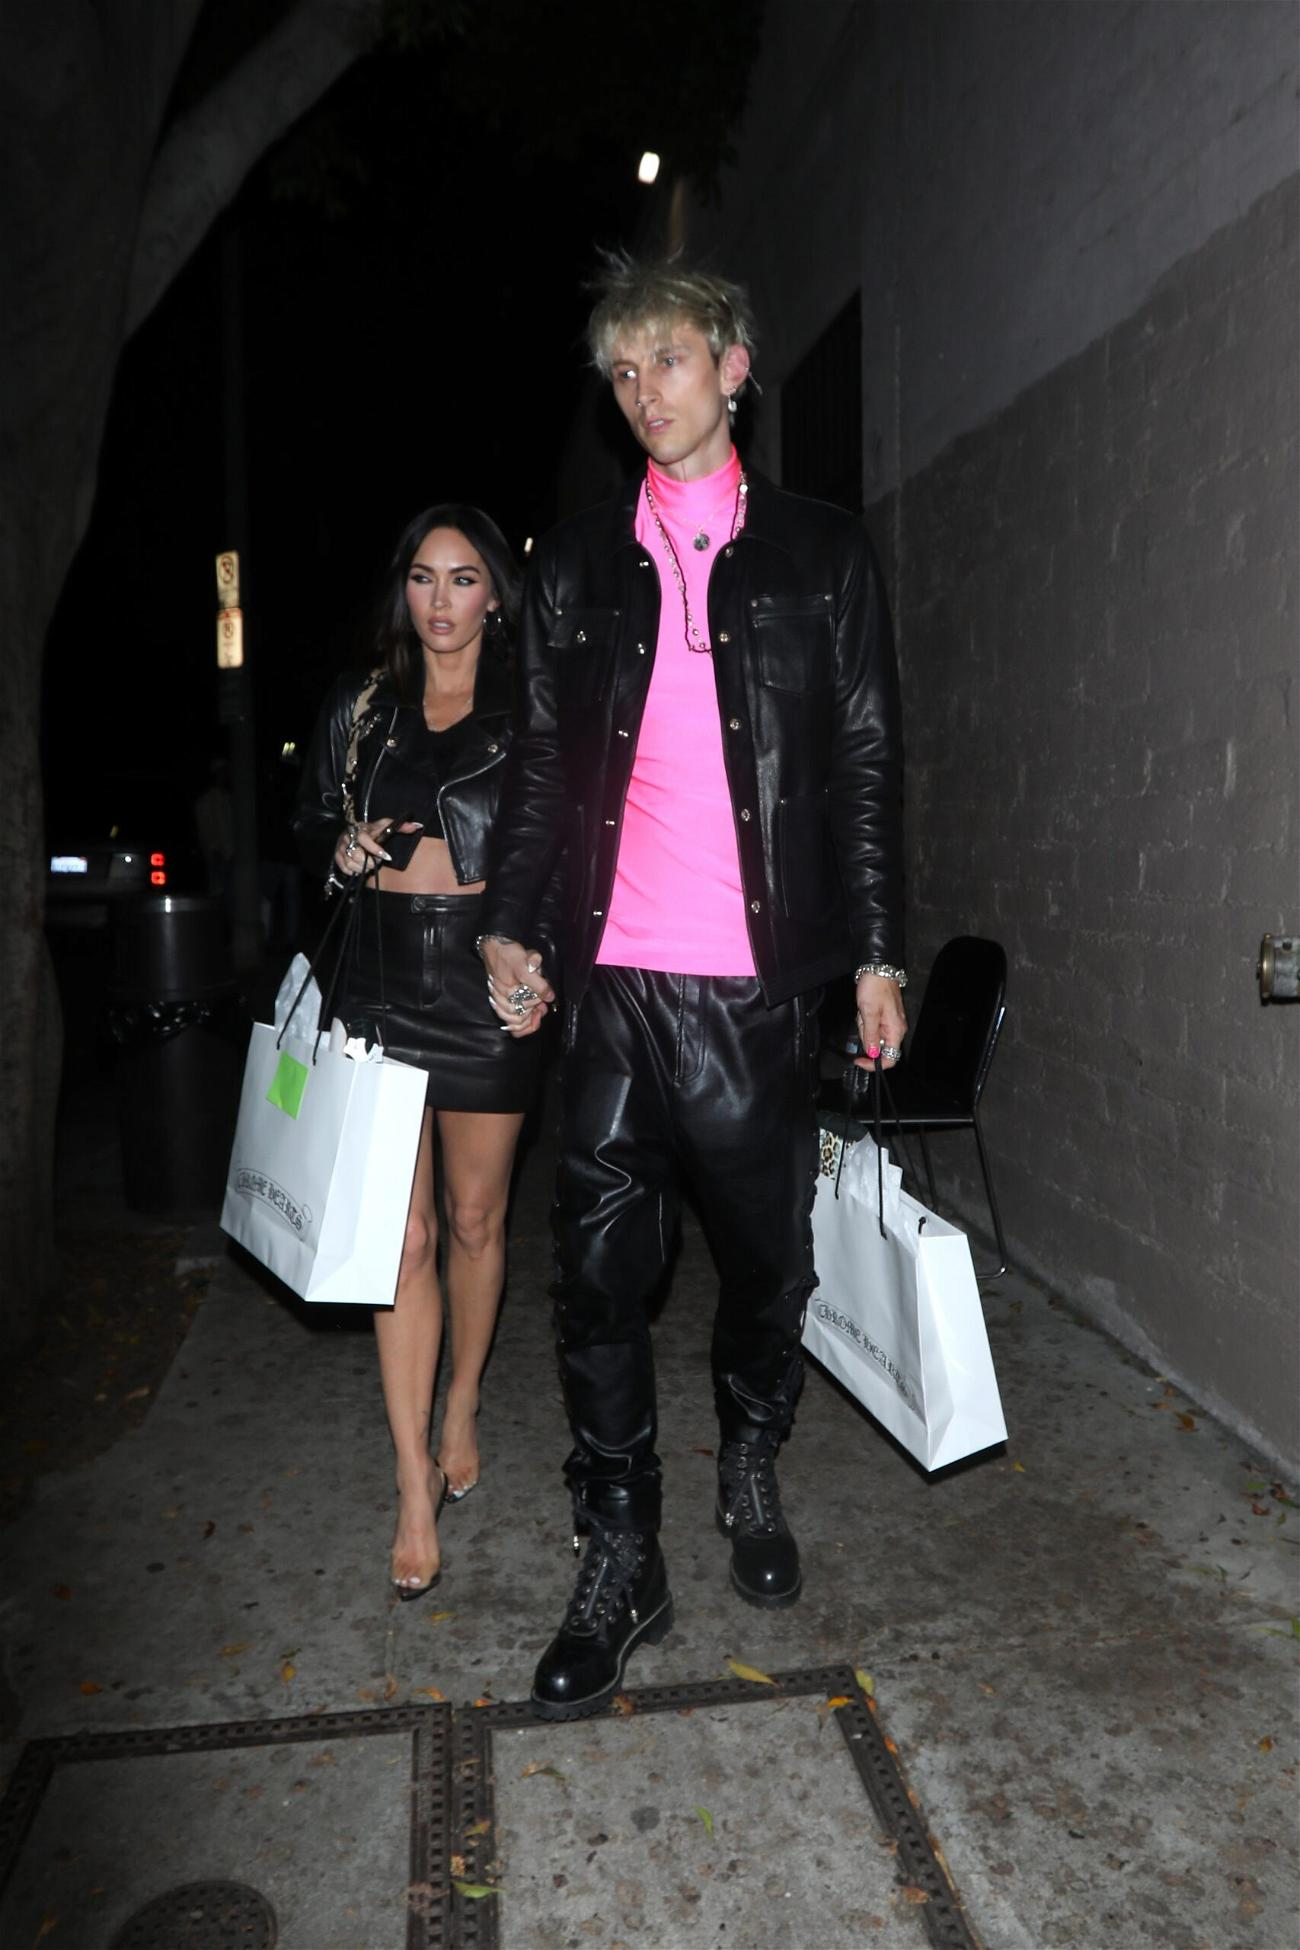 Machine Gun Kelly Criminally Off The Hook In L.A. Battery Case